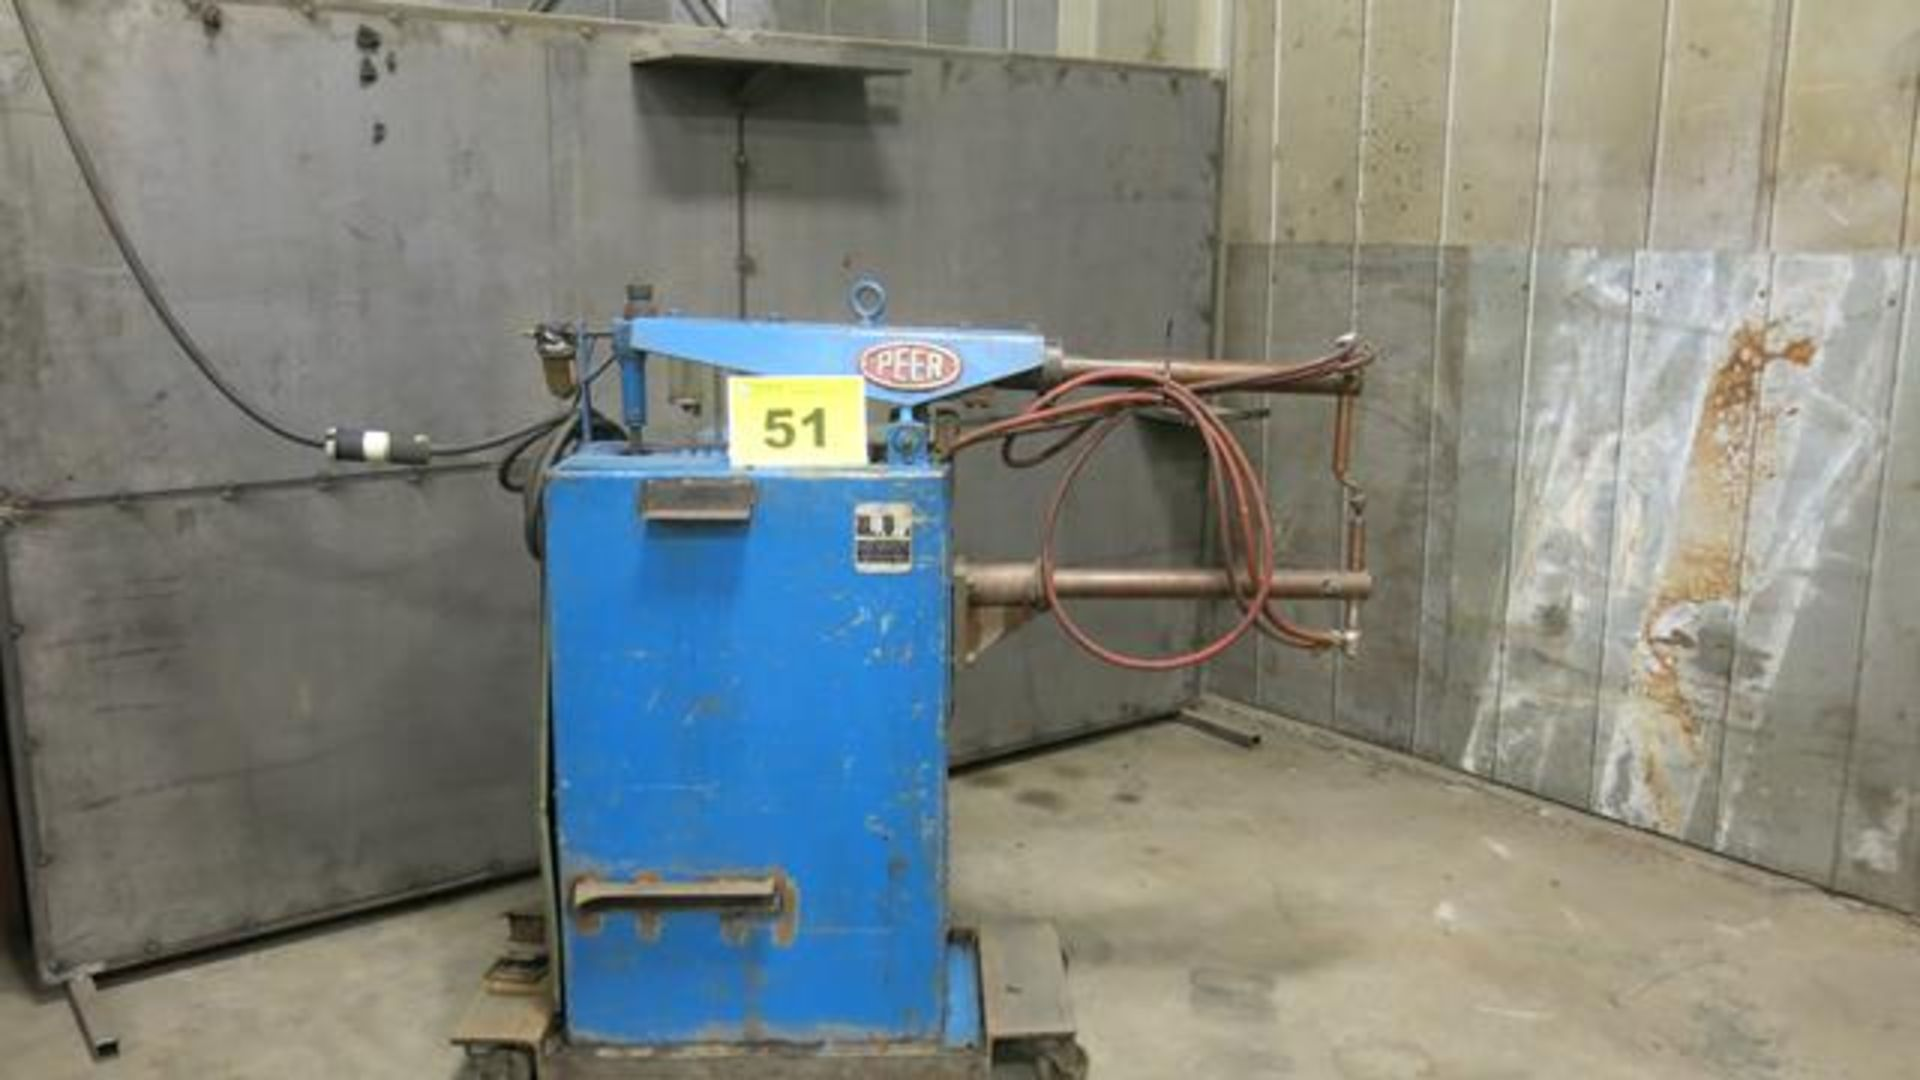 "Lot 51 - PEER, A215, 15 KVA, SPOT WELDER, 27"" THROAT, S/N 11050 (RIGGING $35)"